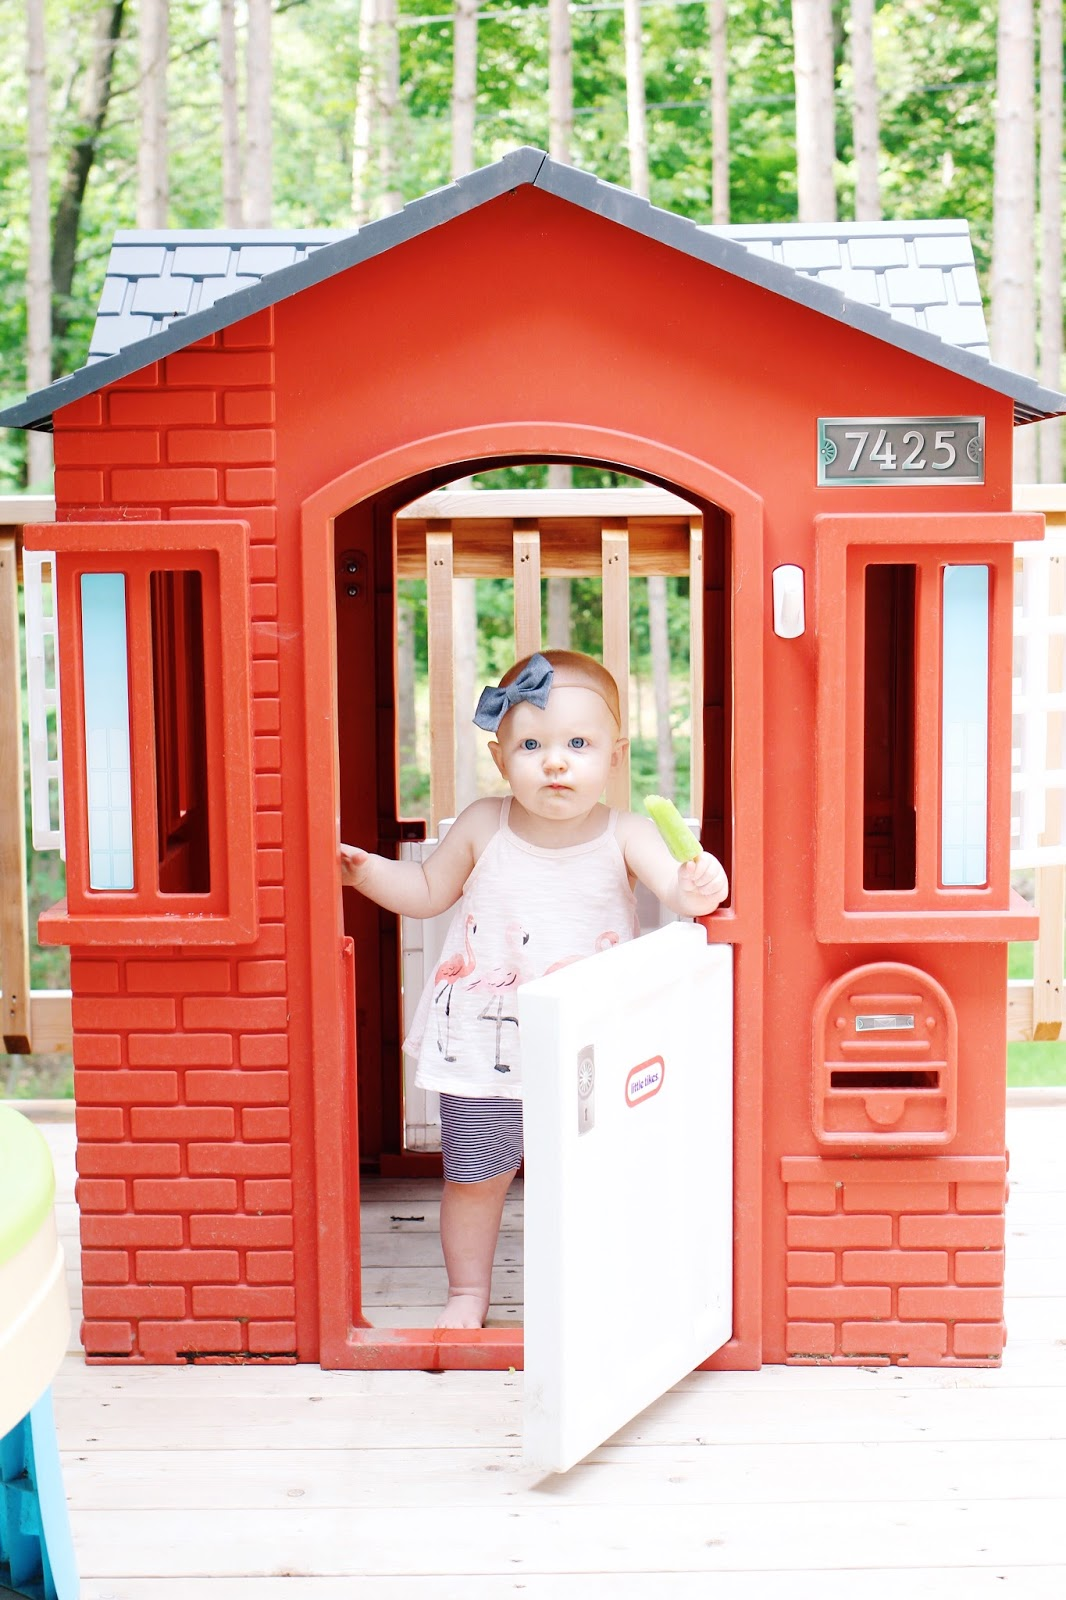 Outdoor Toys Age 4 : Favorite outdoor toys for ages the girl in red shoes